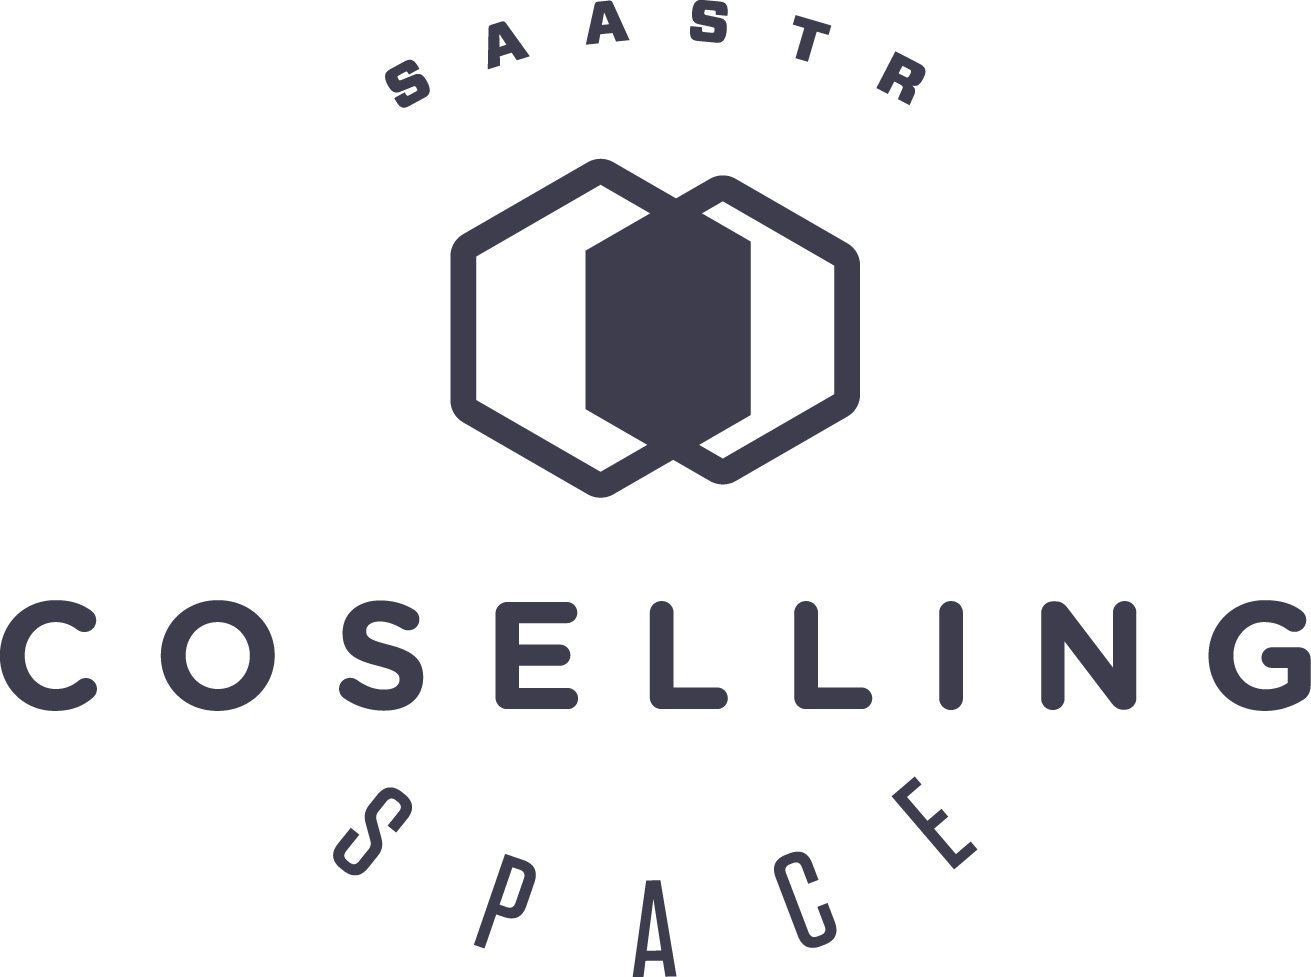 SaaStr CoSelling Space (CSS) - an exclusive Bay Area coworking space for post-revenue SaaS teams